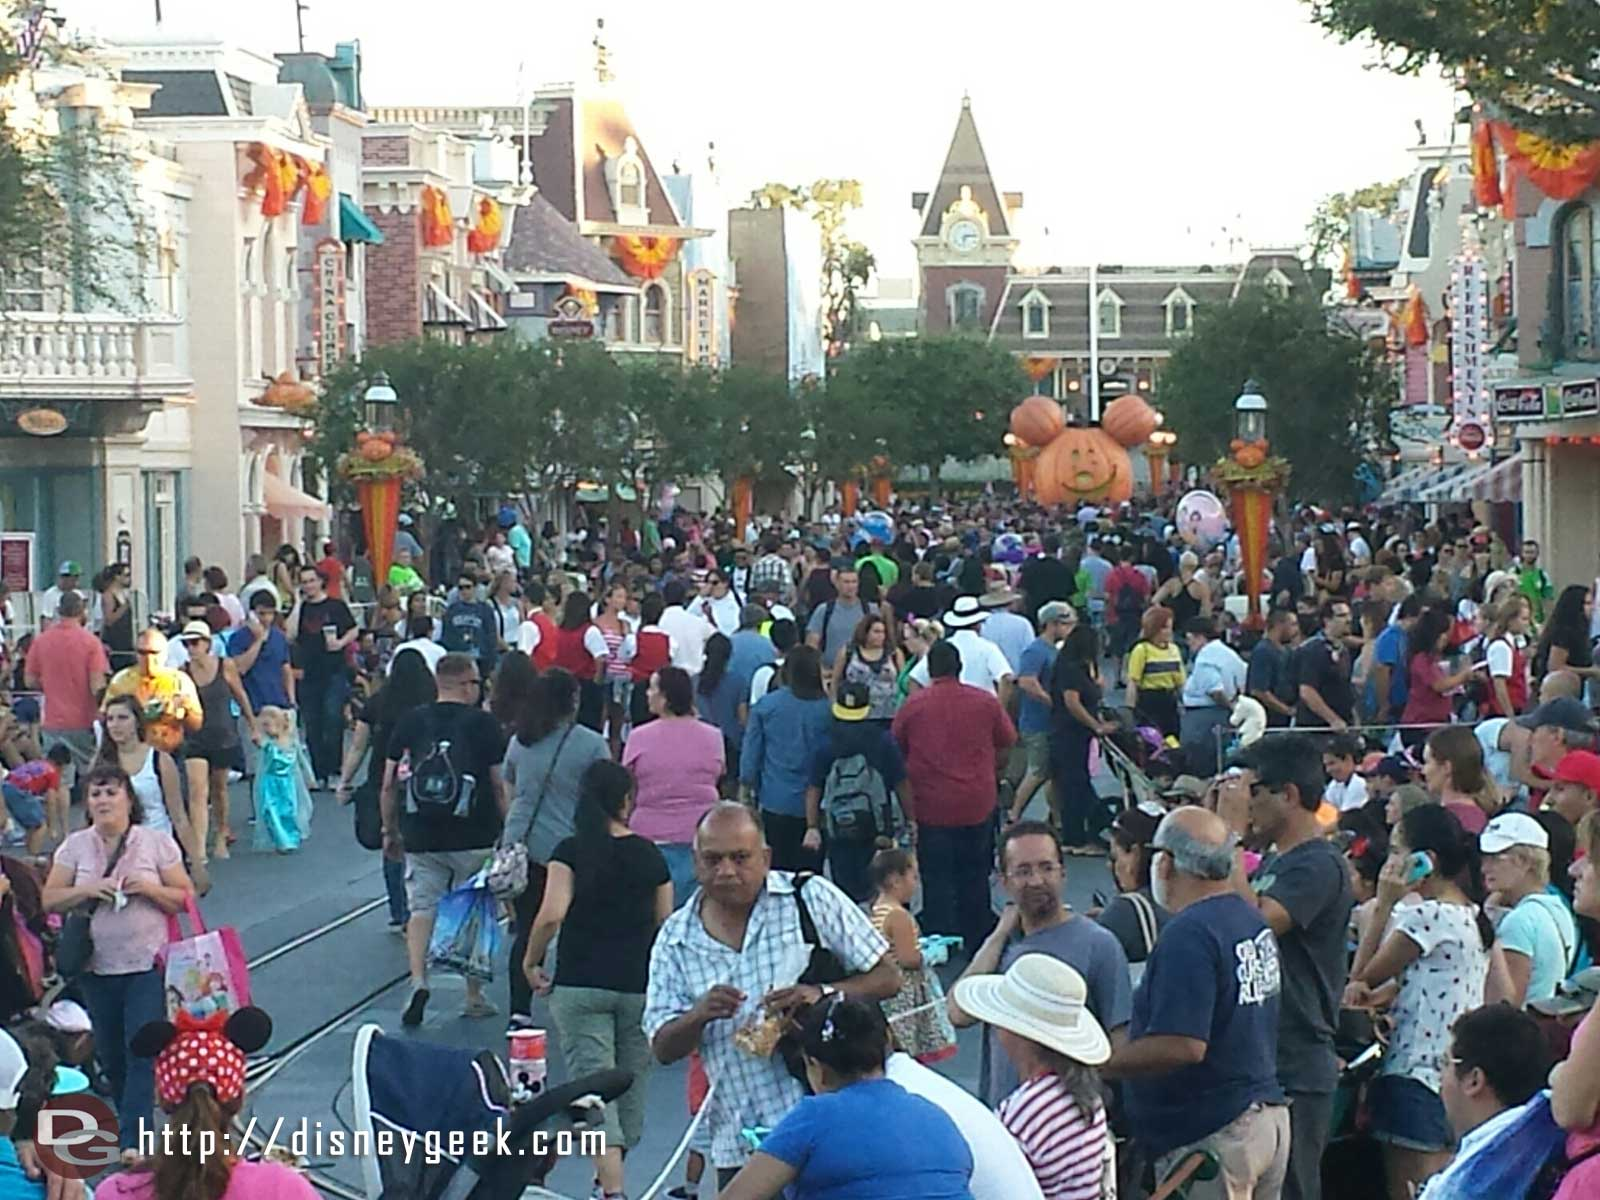 #Disneyland Main Street USA as the evening crowds are arriving and preparing for Soundsational